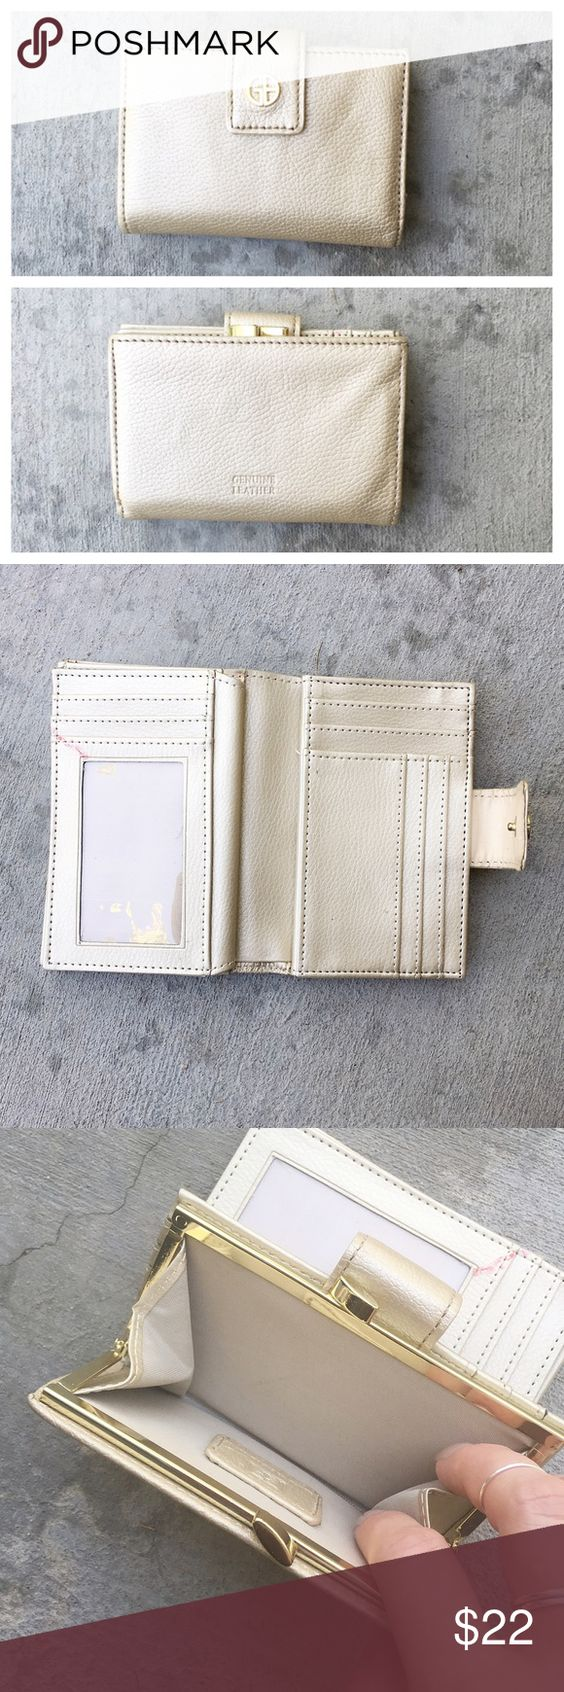 """Iridescent Cream Wallet Gorgeous versatile cream wallet in genuine leather! It has an iridescent shine to it and measures 5"""" long and 3.5"""" tall when folded. It has a cash slot, 19 card slots, a coin snap closure pocket and six other flat spaces. The only flaw is the very slight red mark seen in picture #2. Giani Bernini Bags Wallets"""